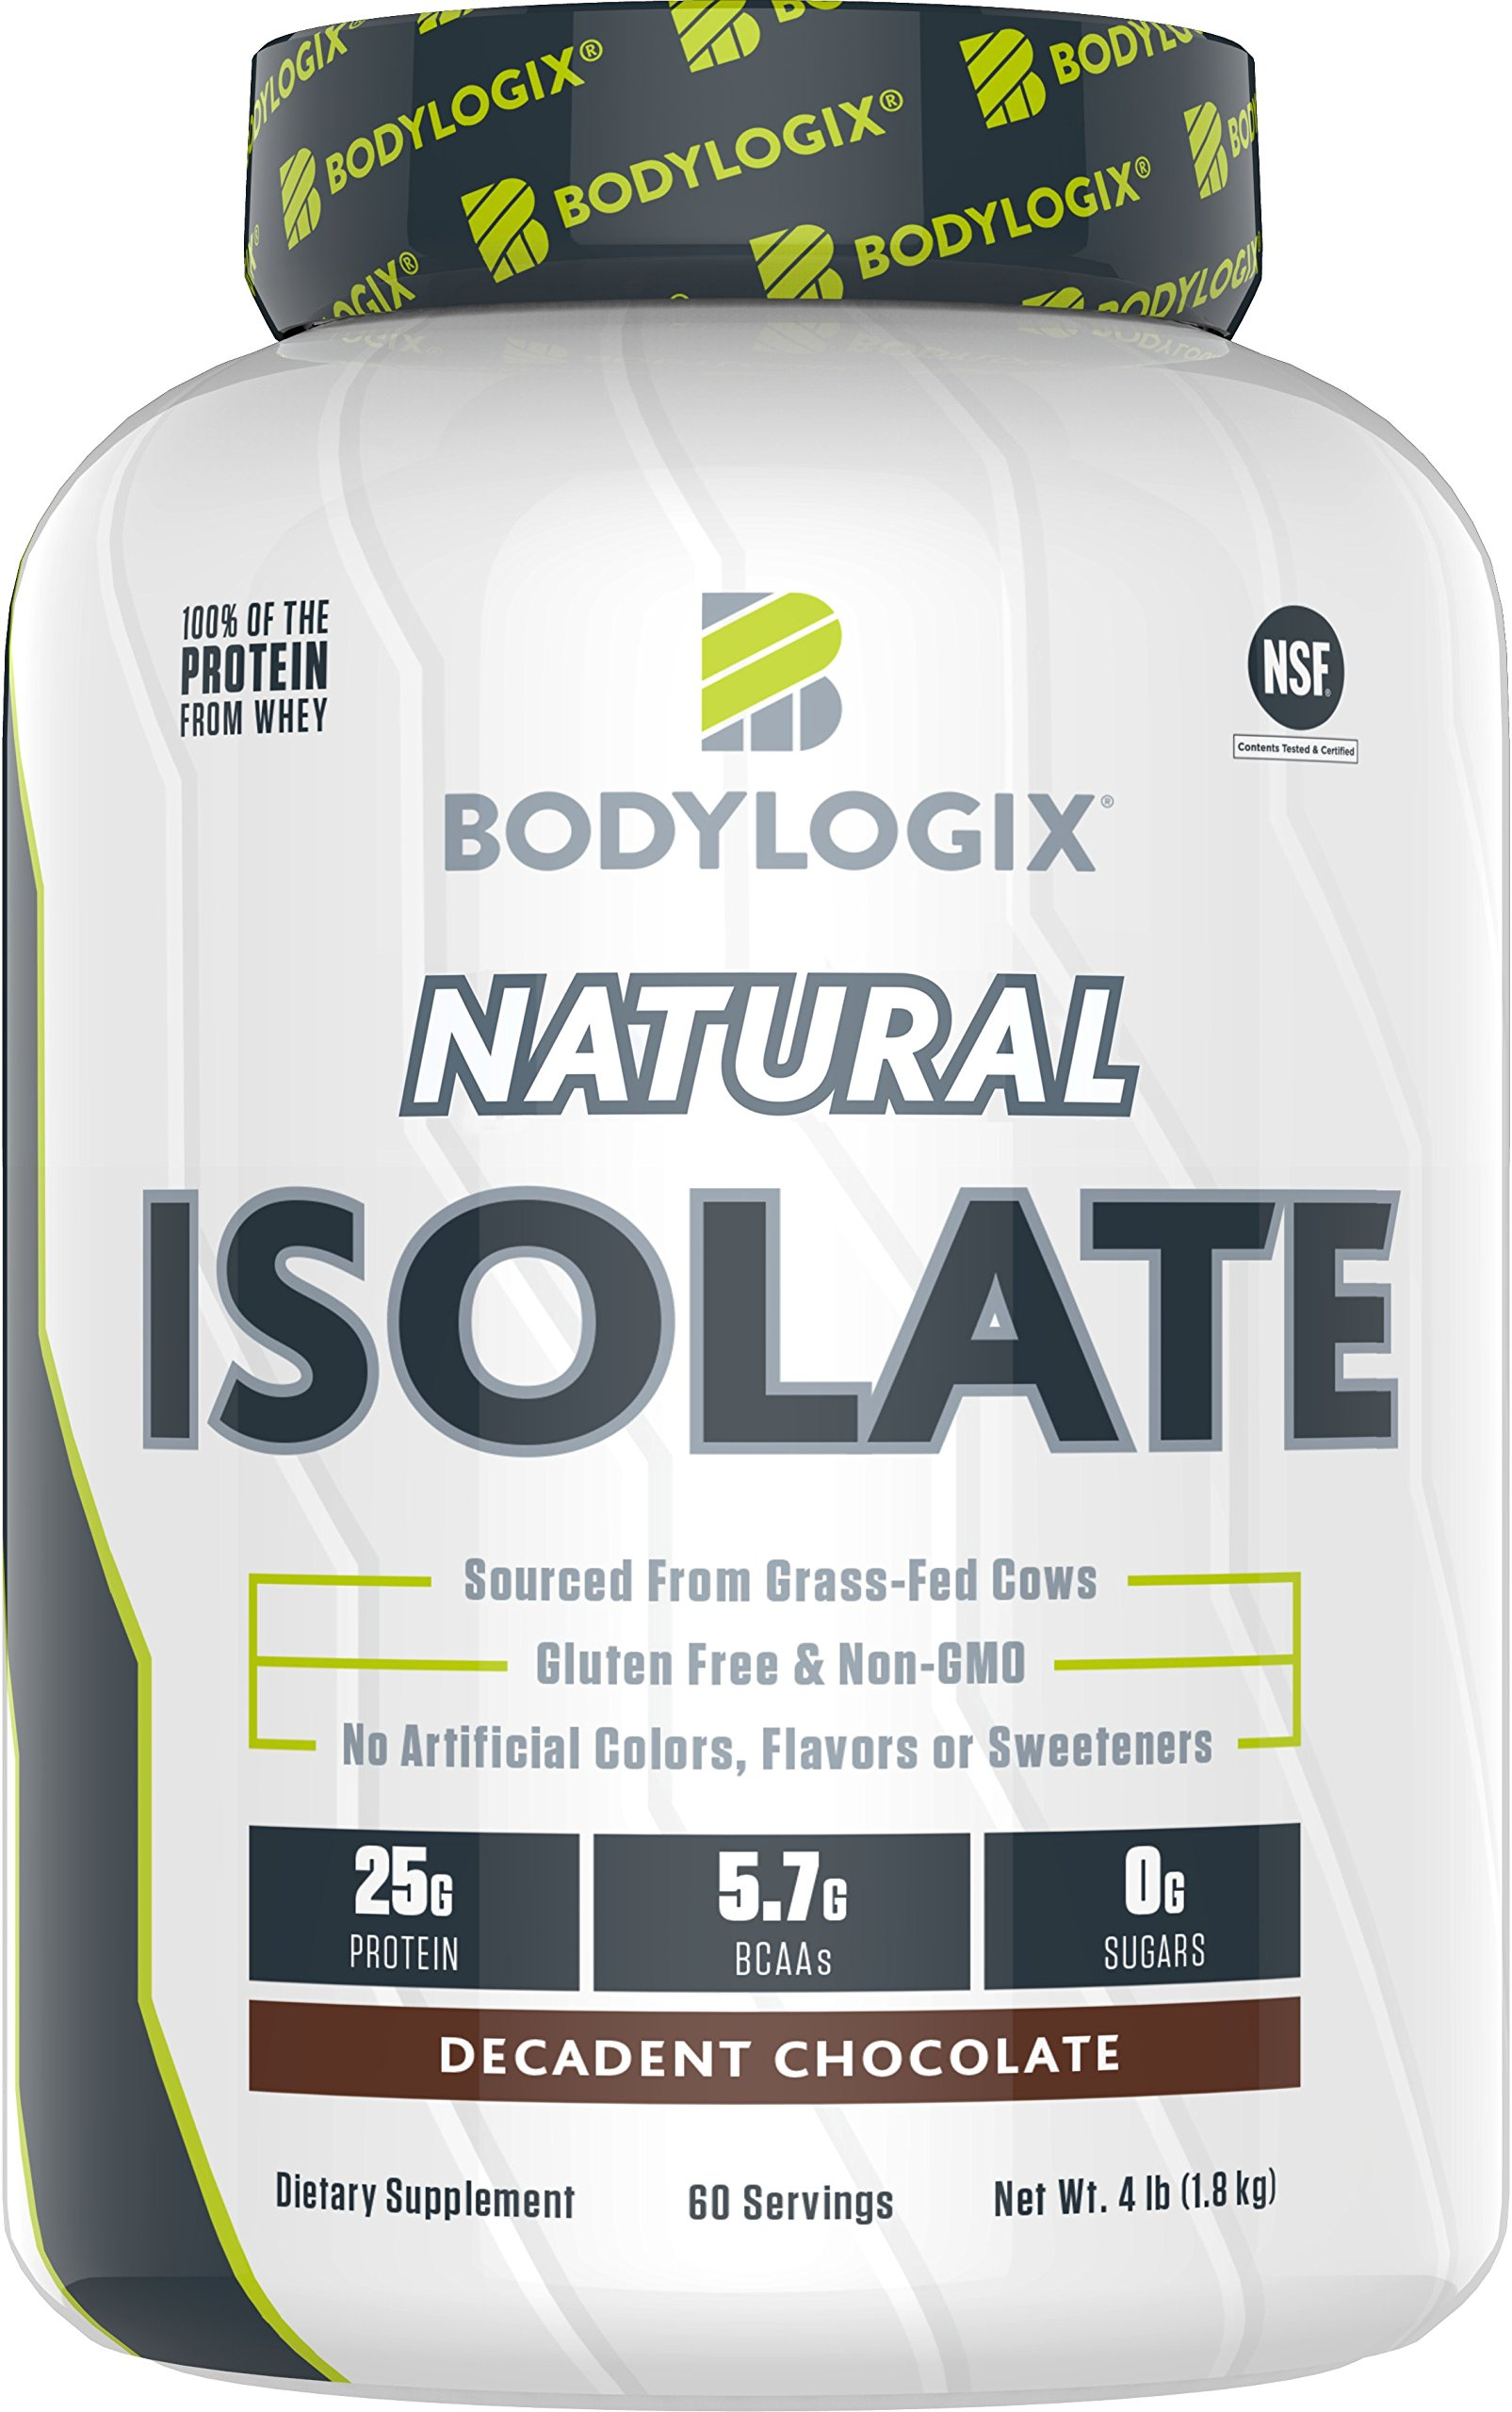 Bodylogix Natural Grass-Fed Whey Isolate Protein Powder, NSF Certified, Decadent Chocolate, 4 Pound by Bodylogix